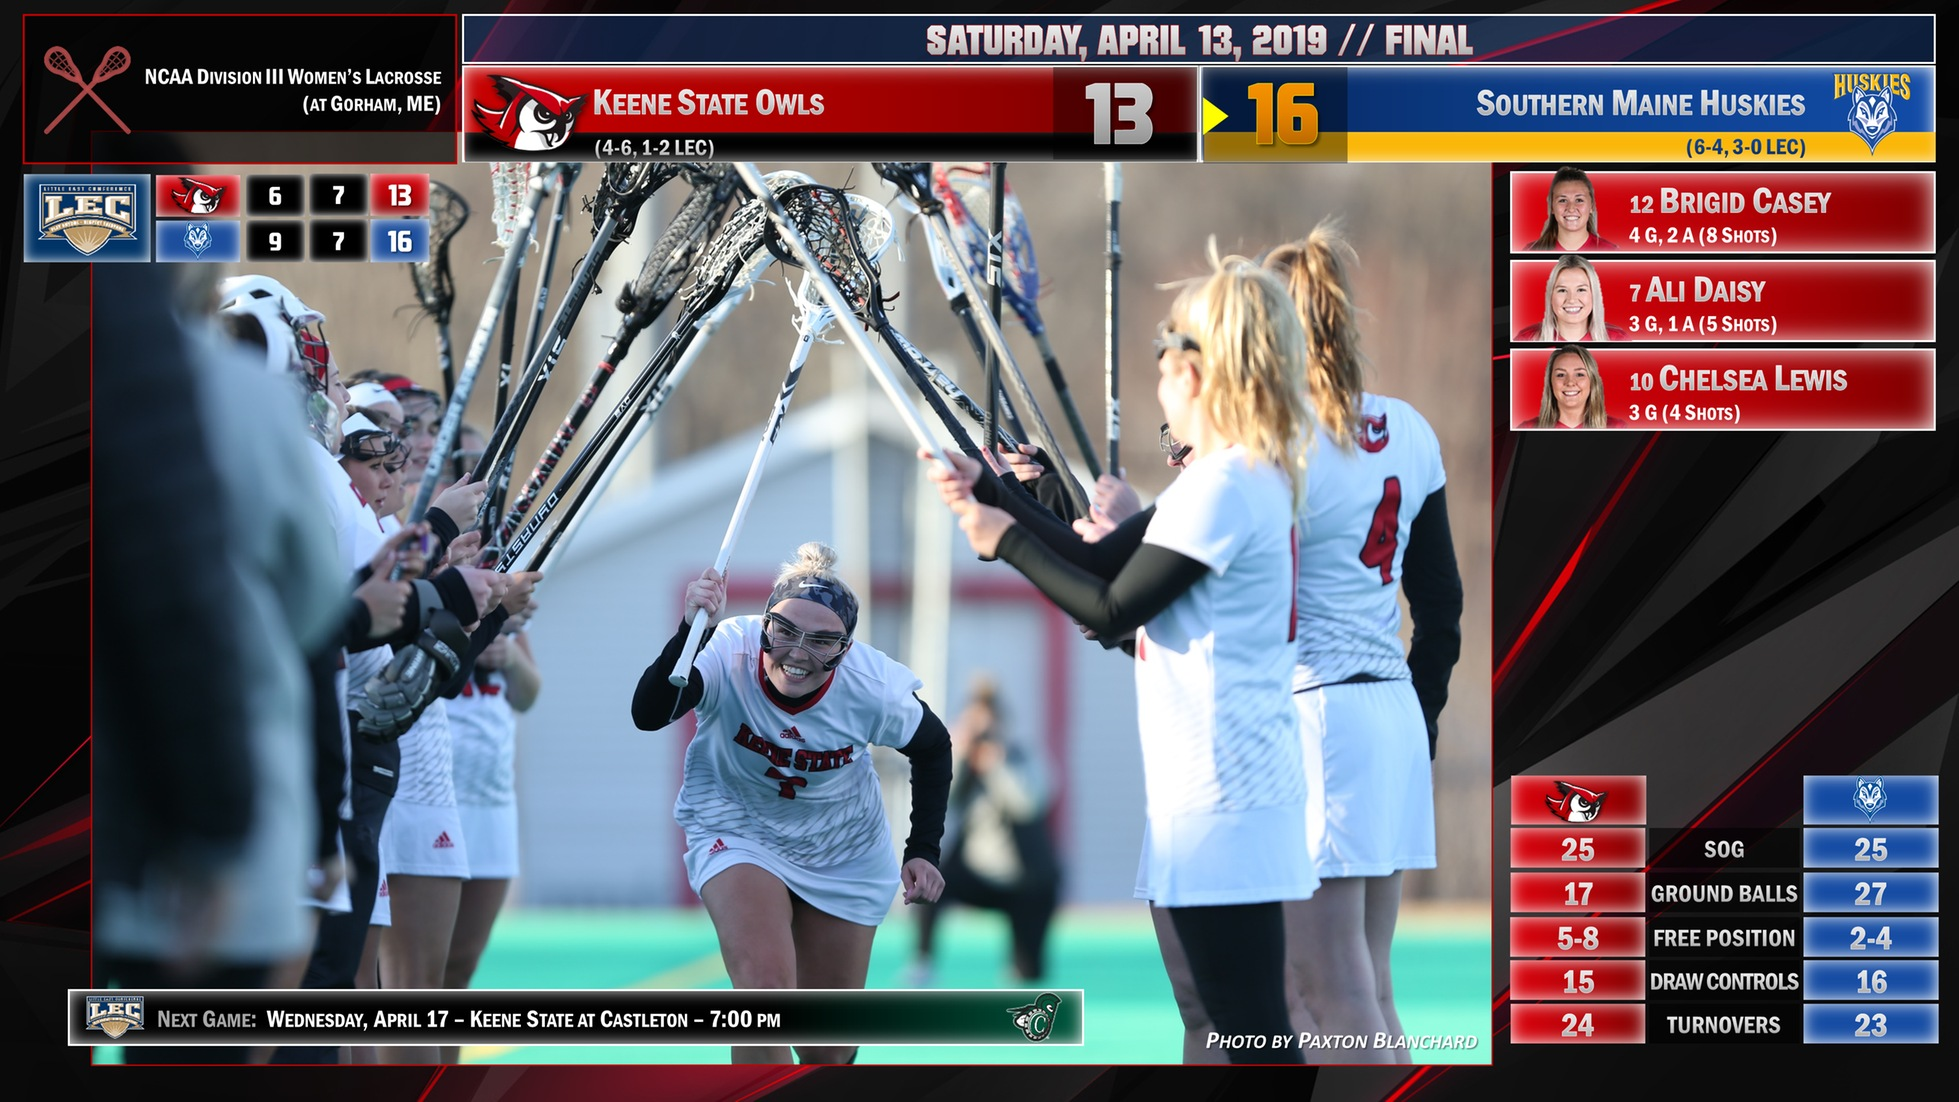 Women's Lacrosse Falls to Southern Maine 16-13